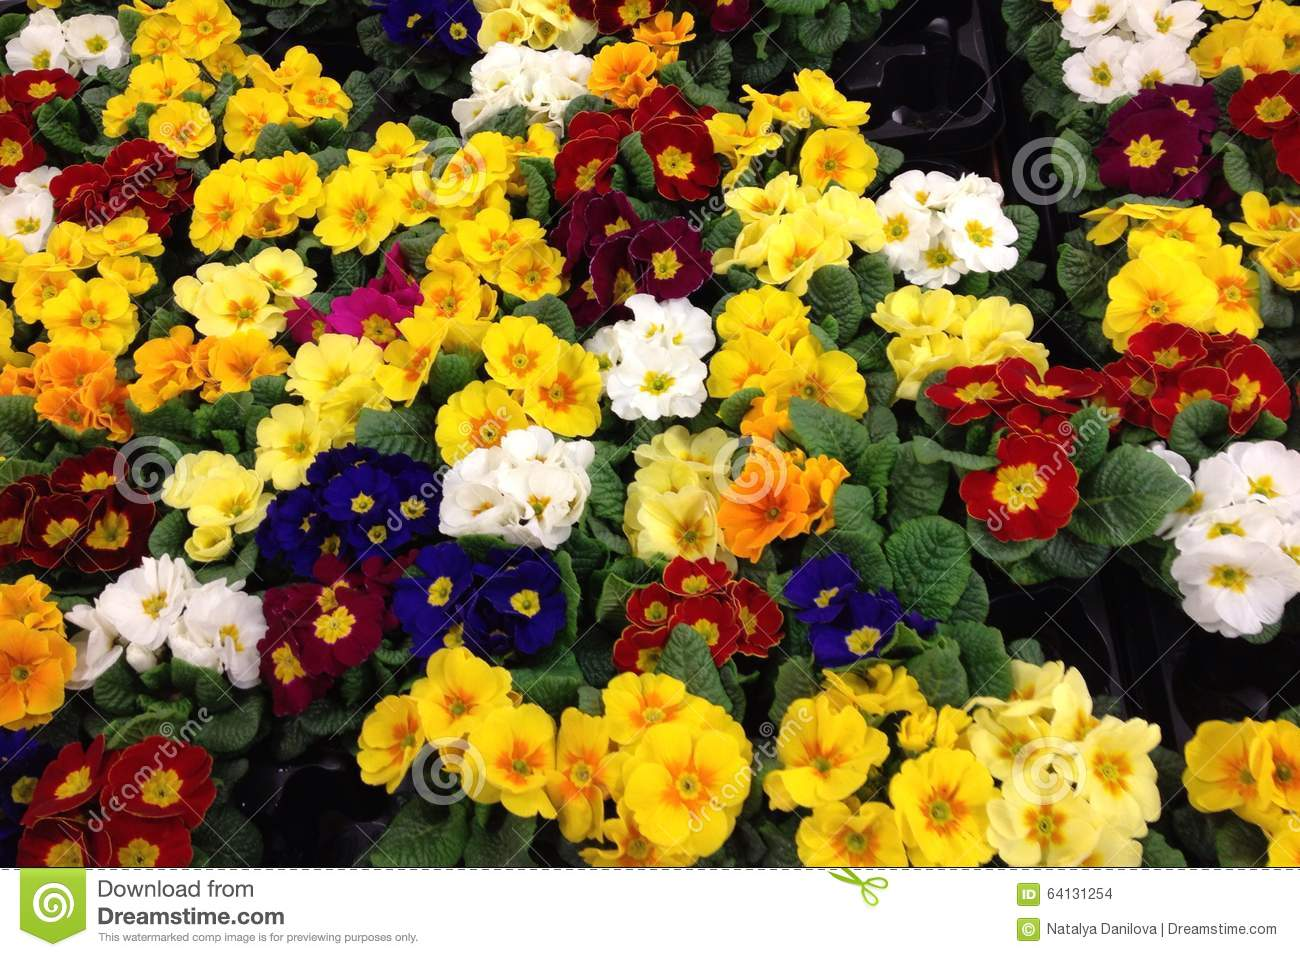 Flowers of different colors stock photo image 64131254 for What makes flowers different colors